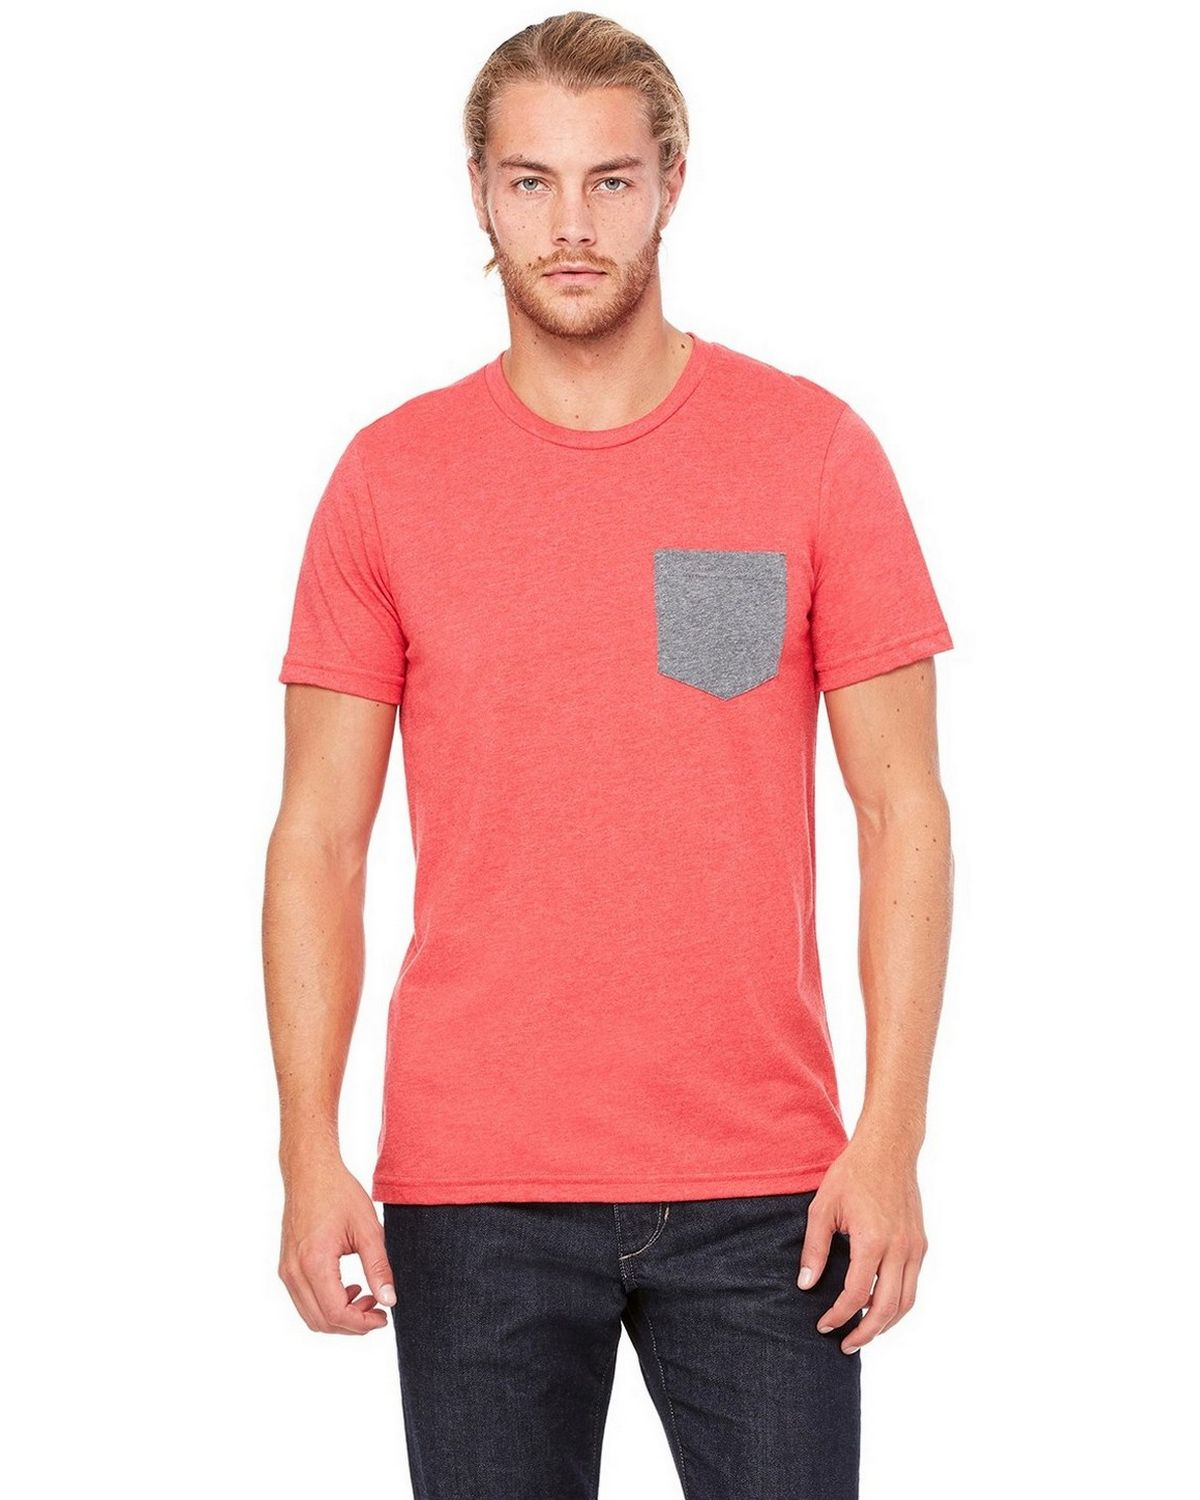 Bella + Canvas 3021 Mens Jersey Pocket T-Shirt - Heather Red/Deep Heather - M 3021